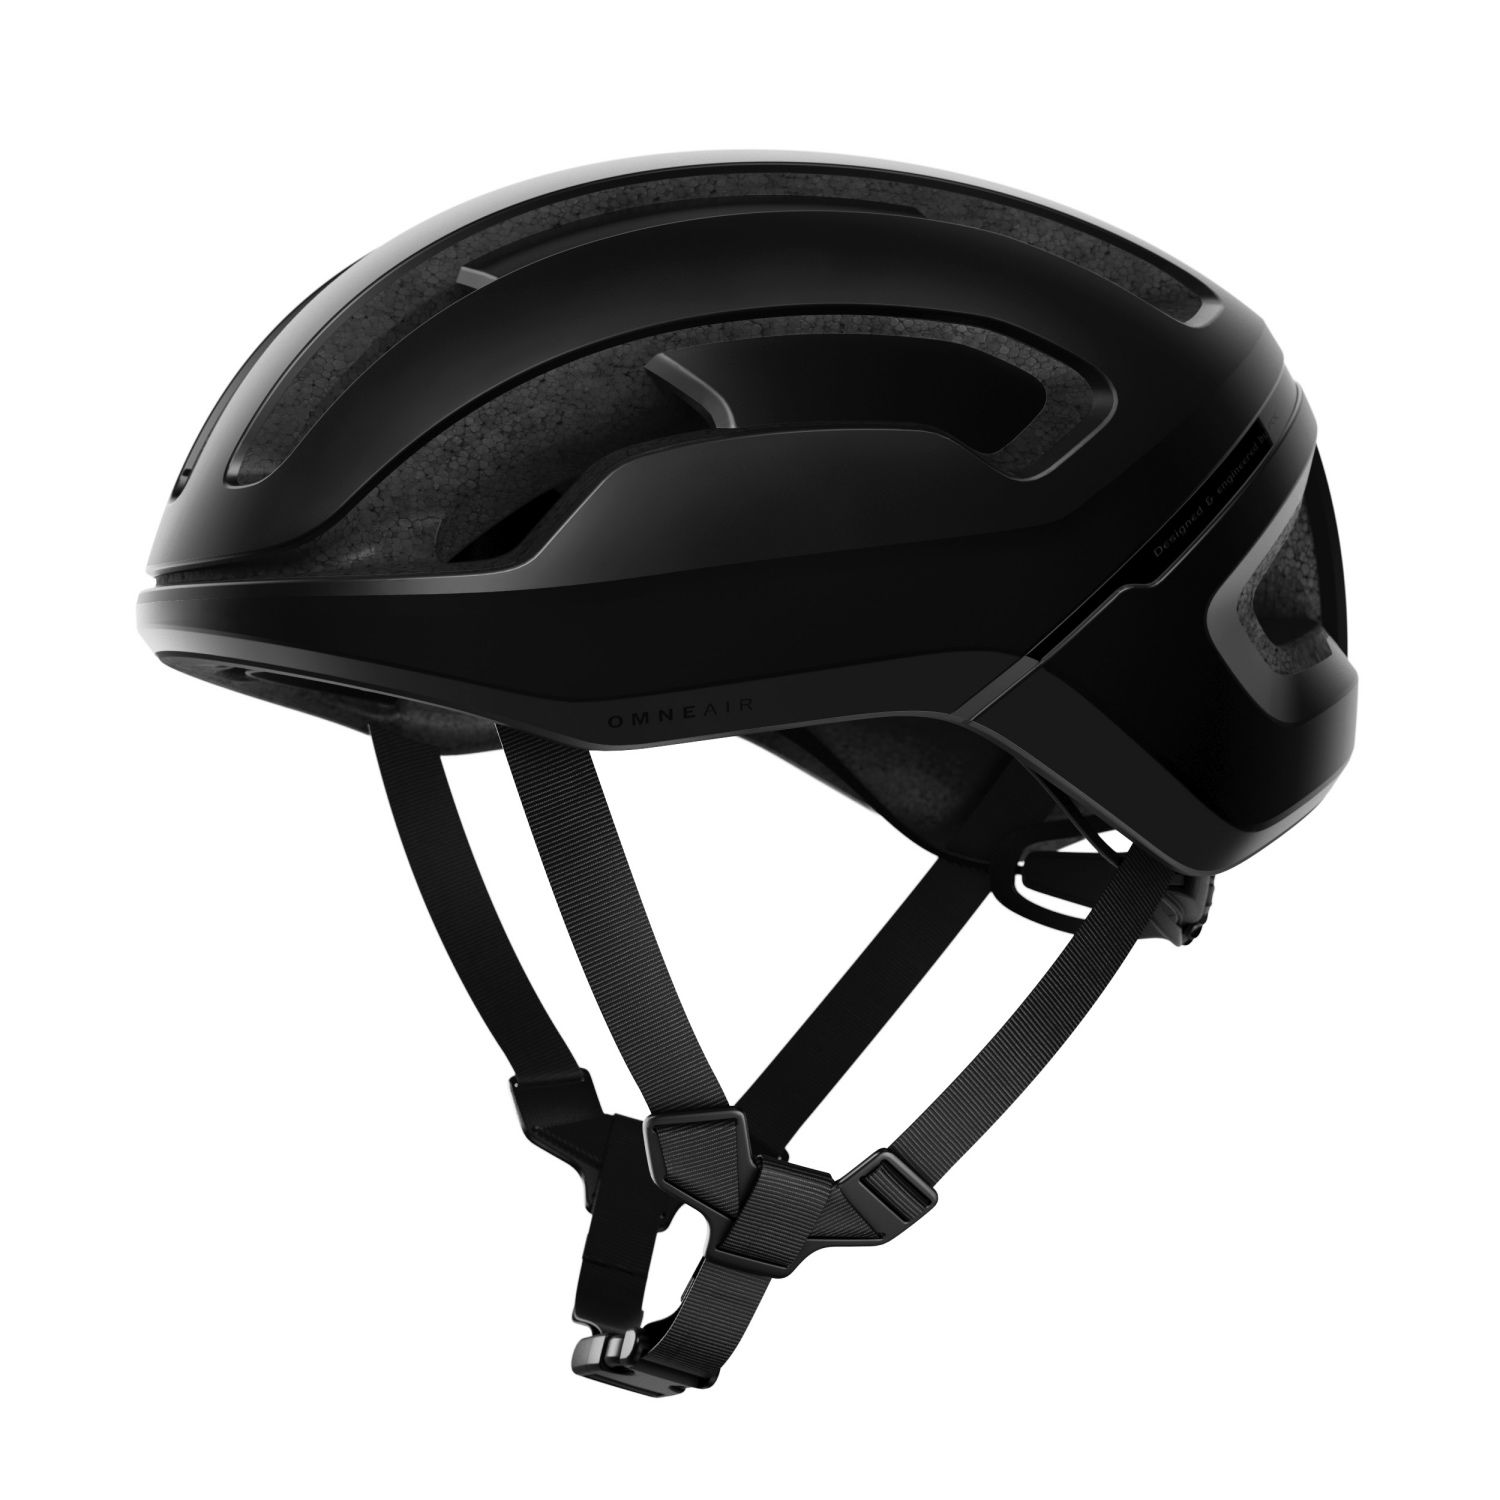 POC Omne Air SPIN helmet and new apparel launched Spin